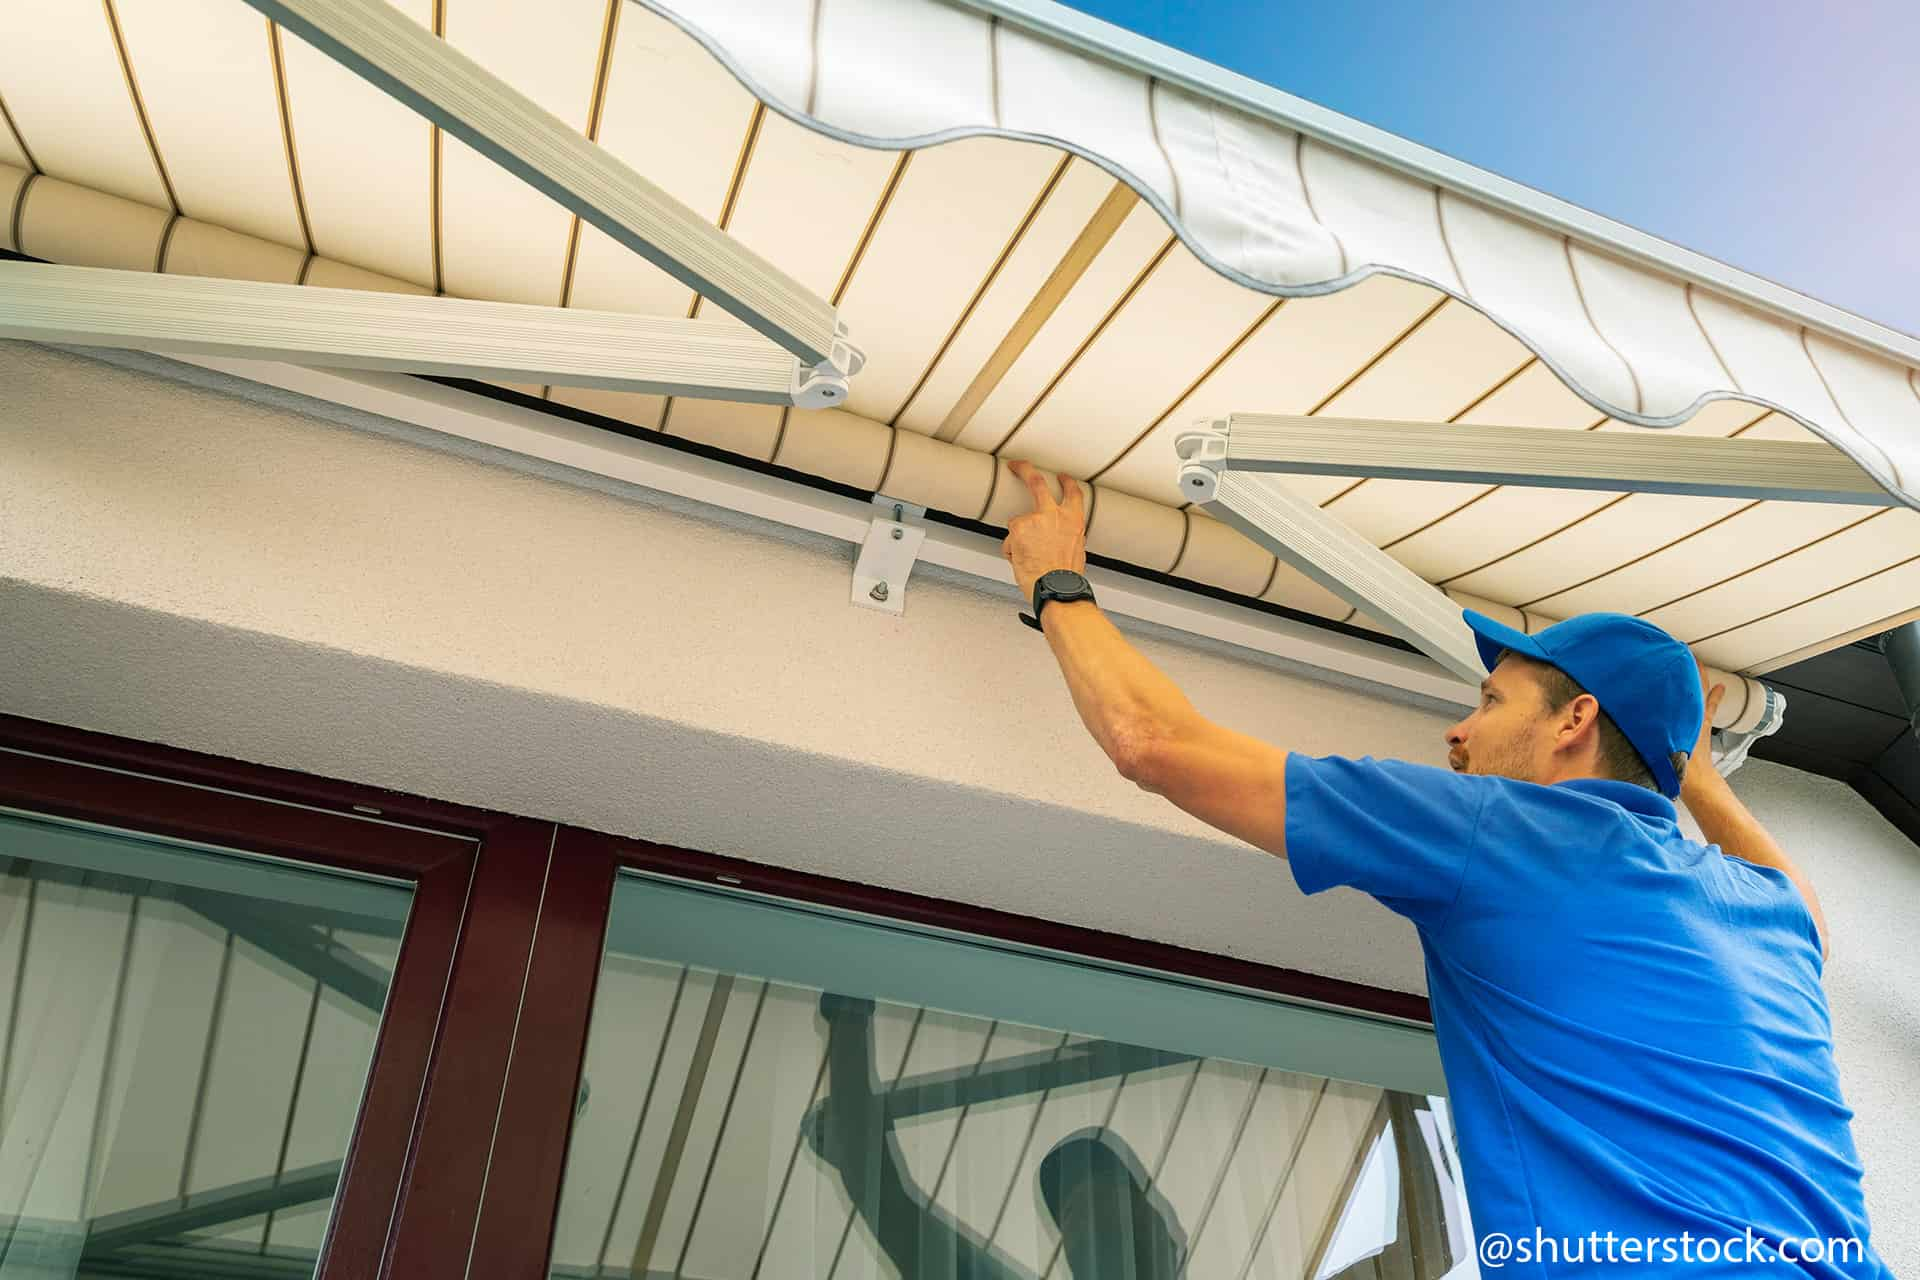 how to correctly lubricate awnings 1